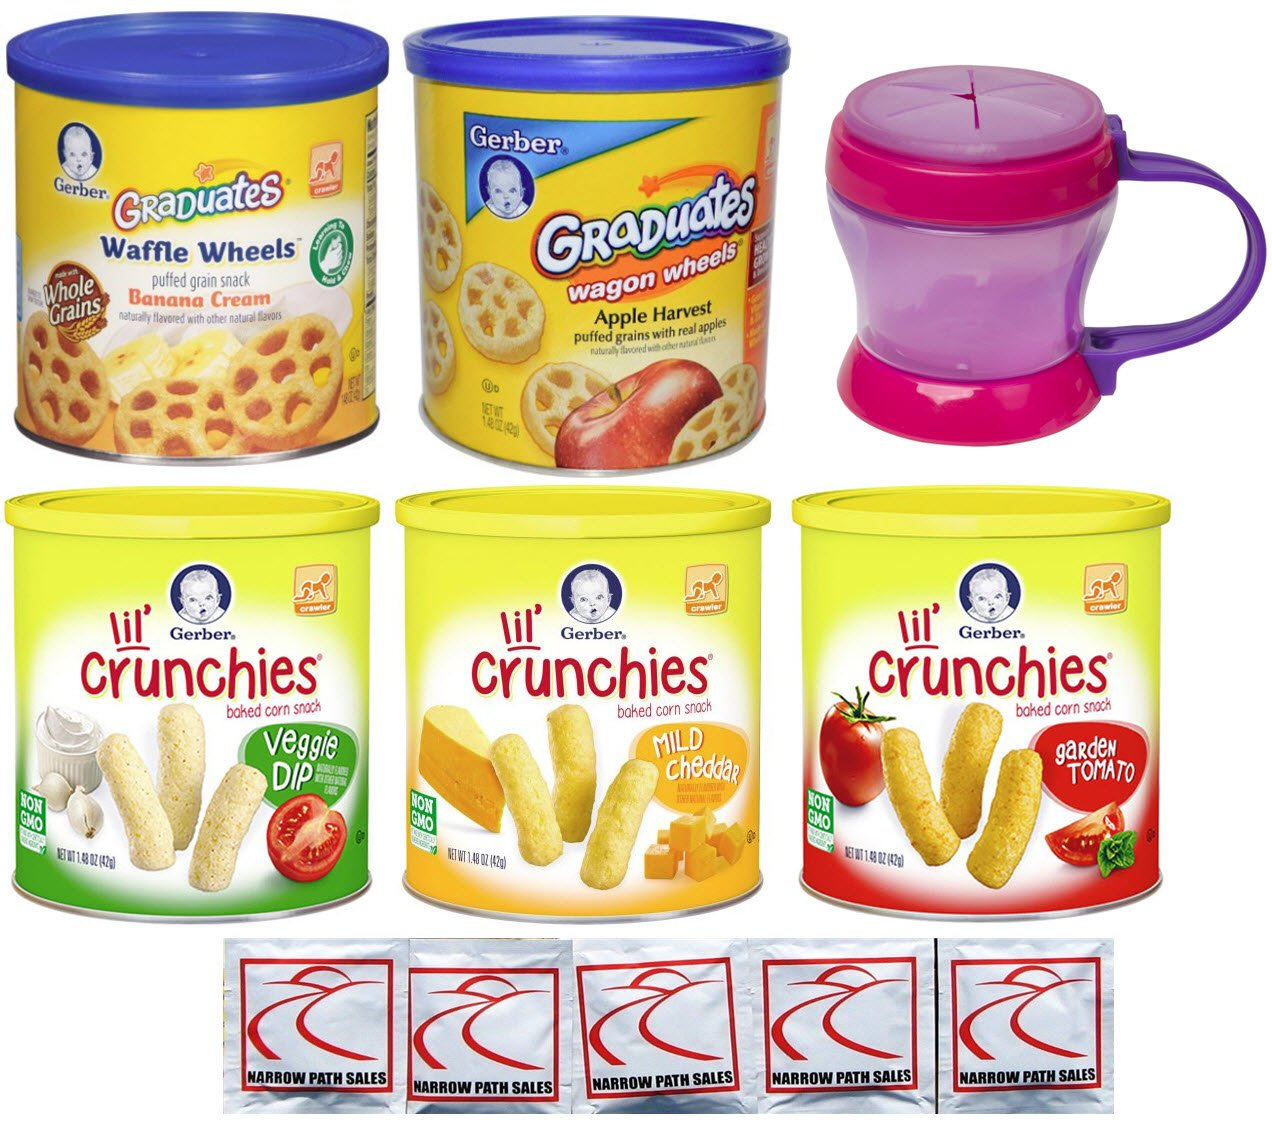 Gerber Graduates Baby Food Snacks - Lil Crunchies and Gerber Waffle and Wagon Wheels Variety Pack with Carrying Cup - Bundle of 5 Flavors by Narrow Path Sales